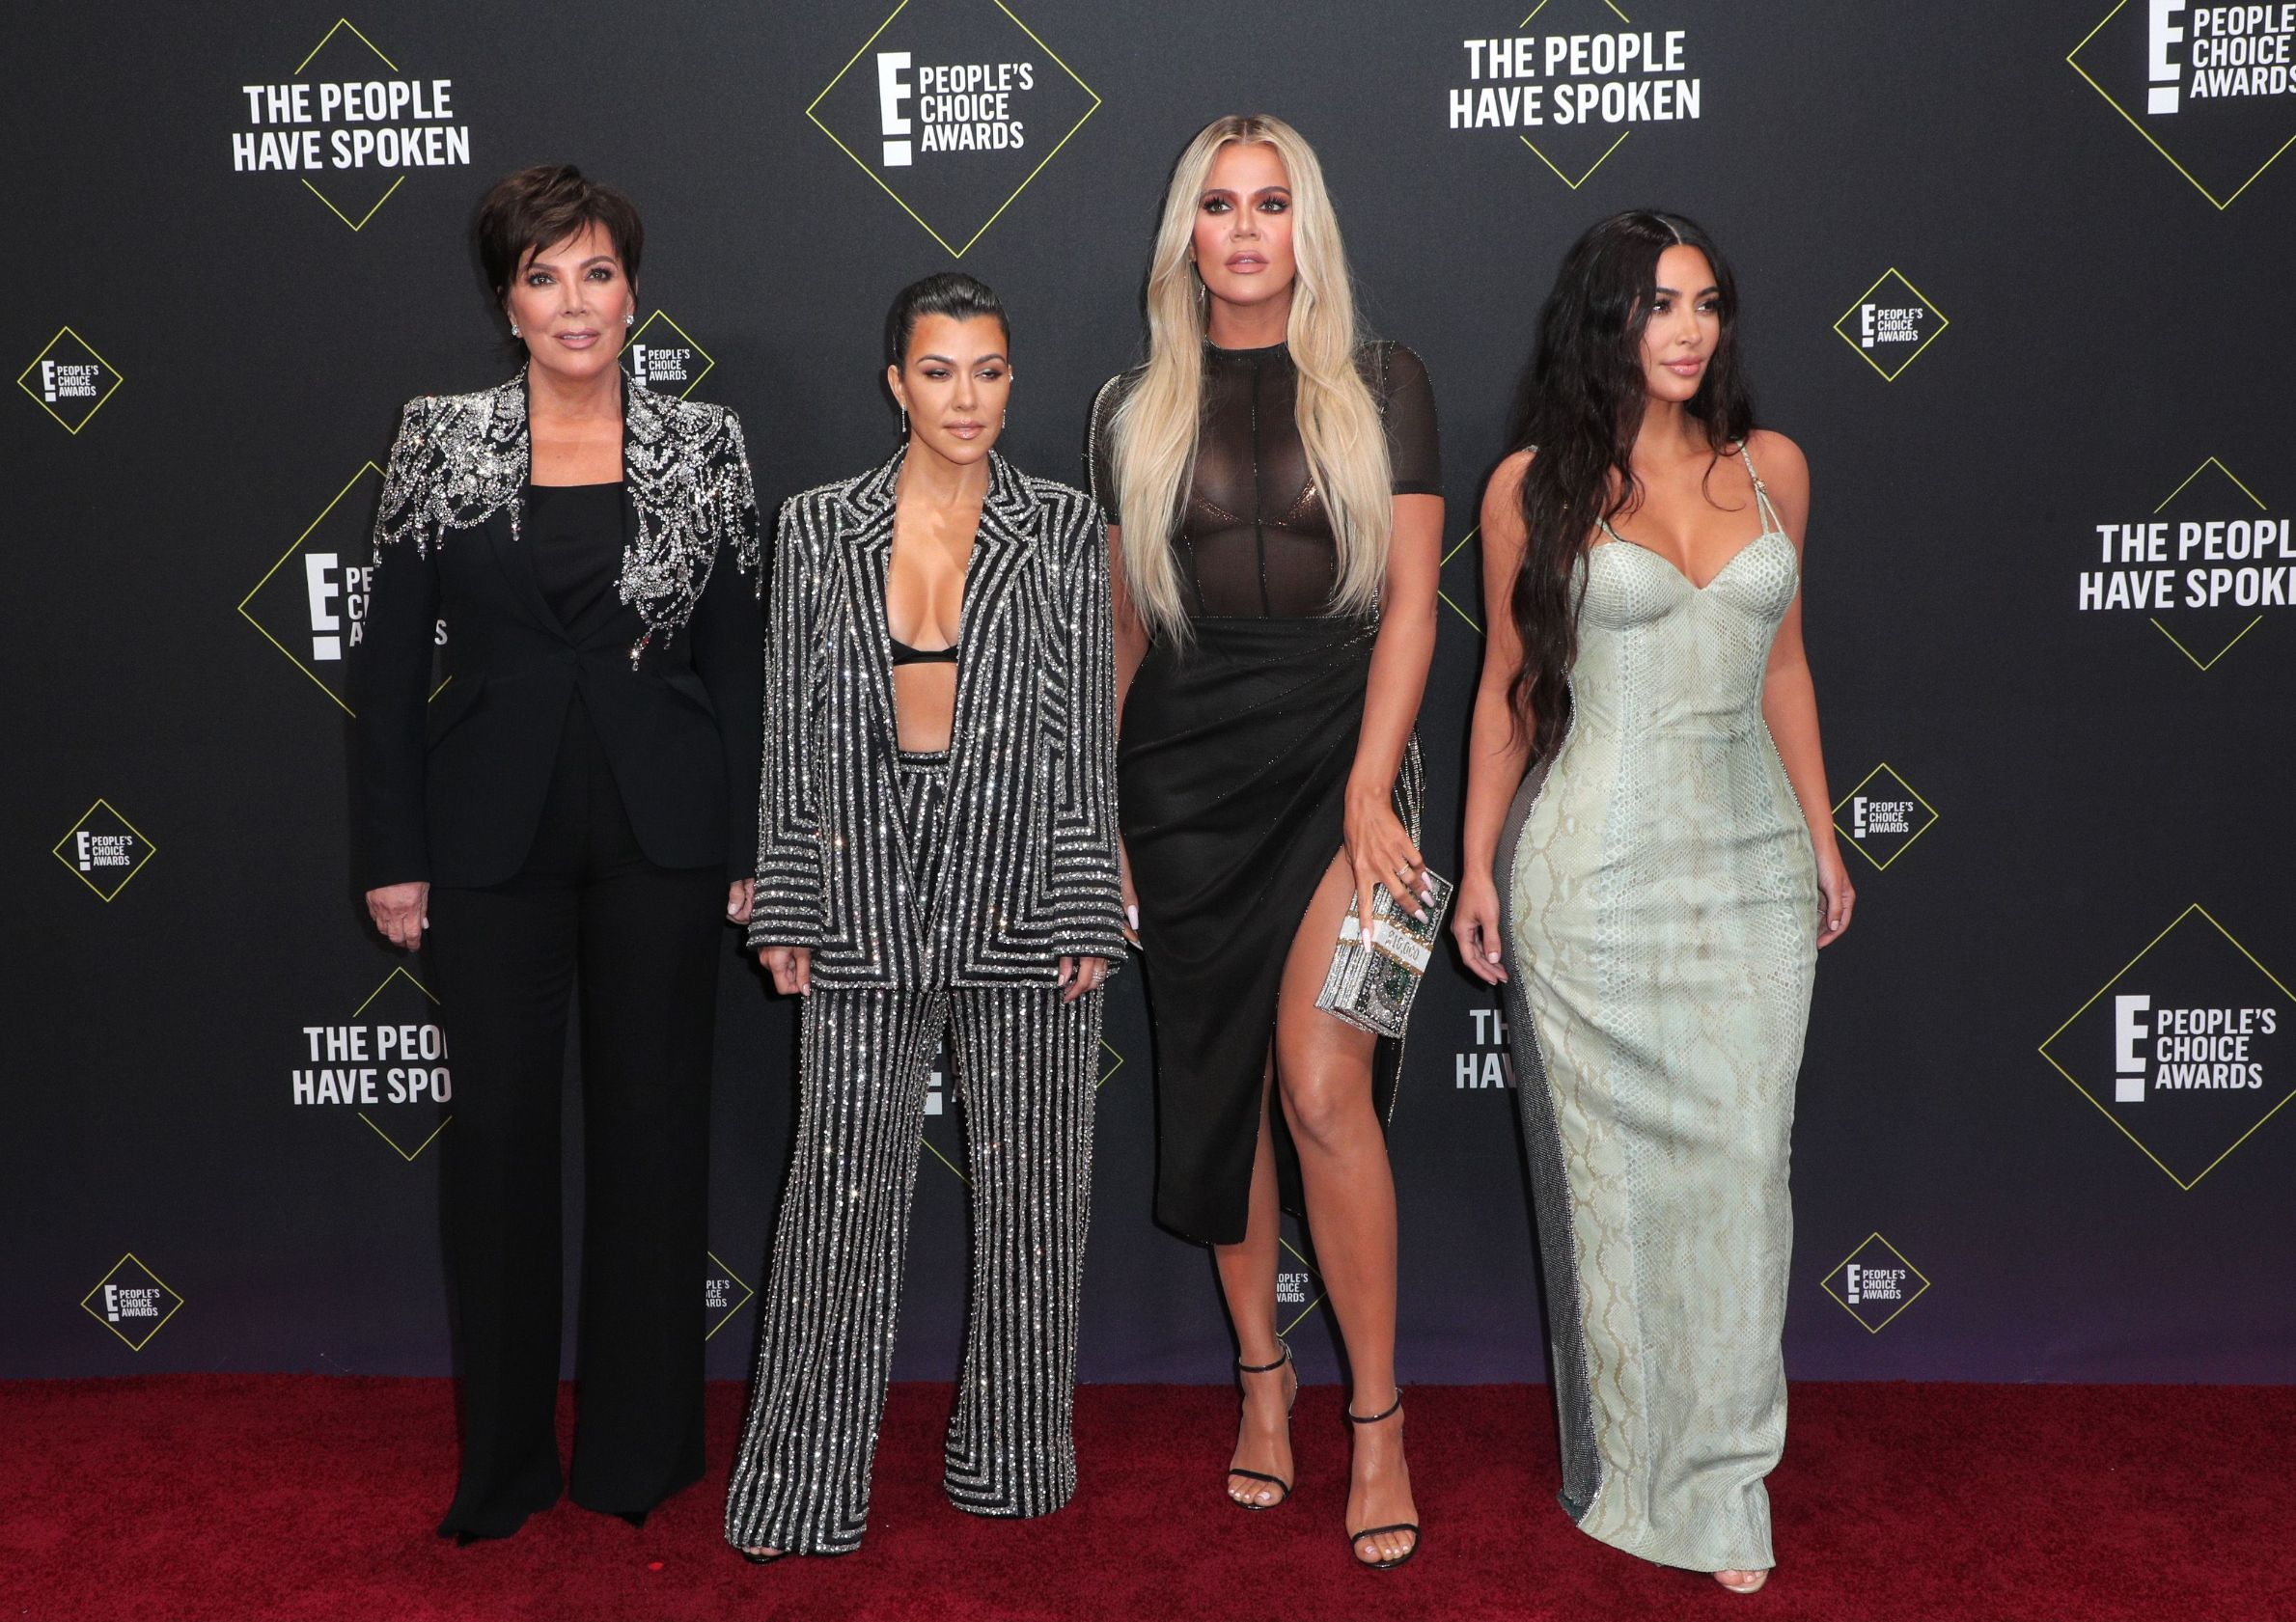 Kris Jenner, Kourtney Kardashian, Khloe Kardashian and Kim Kardashian West 45th Annual People's Choice Awards, Arrivals, Barker Hanger, Los Angeles, USA - 10 Nov 2019,Image: 482160650, License: Rights-managed, Restrictions: , Model Release: no, Credit line: John Salangsang / Shutterstock Editorial / Profimedia